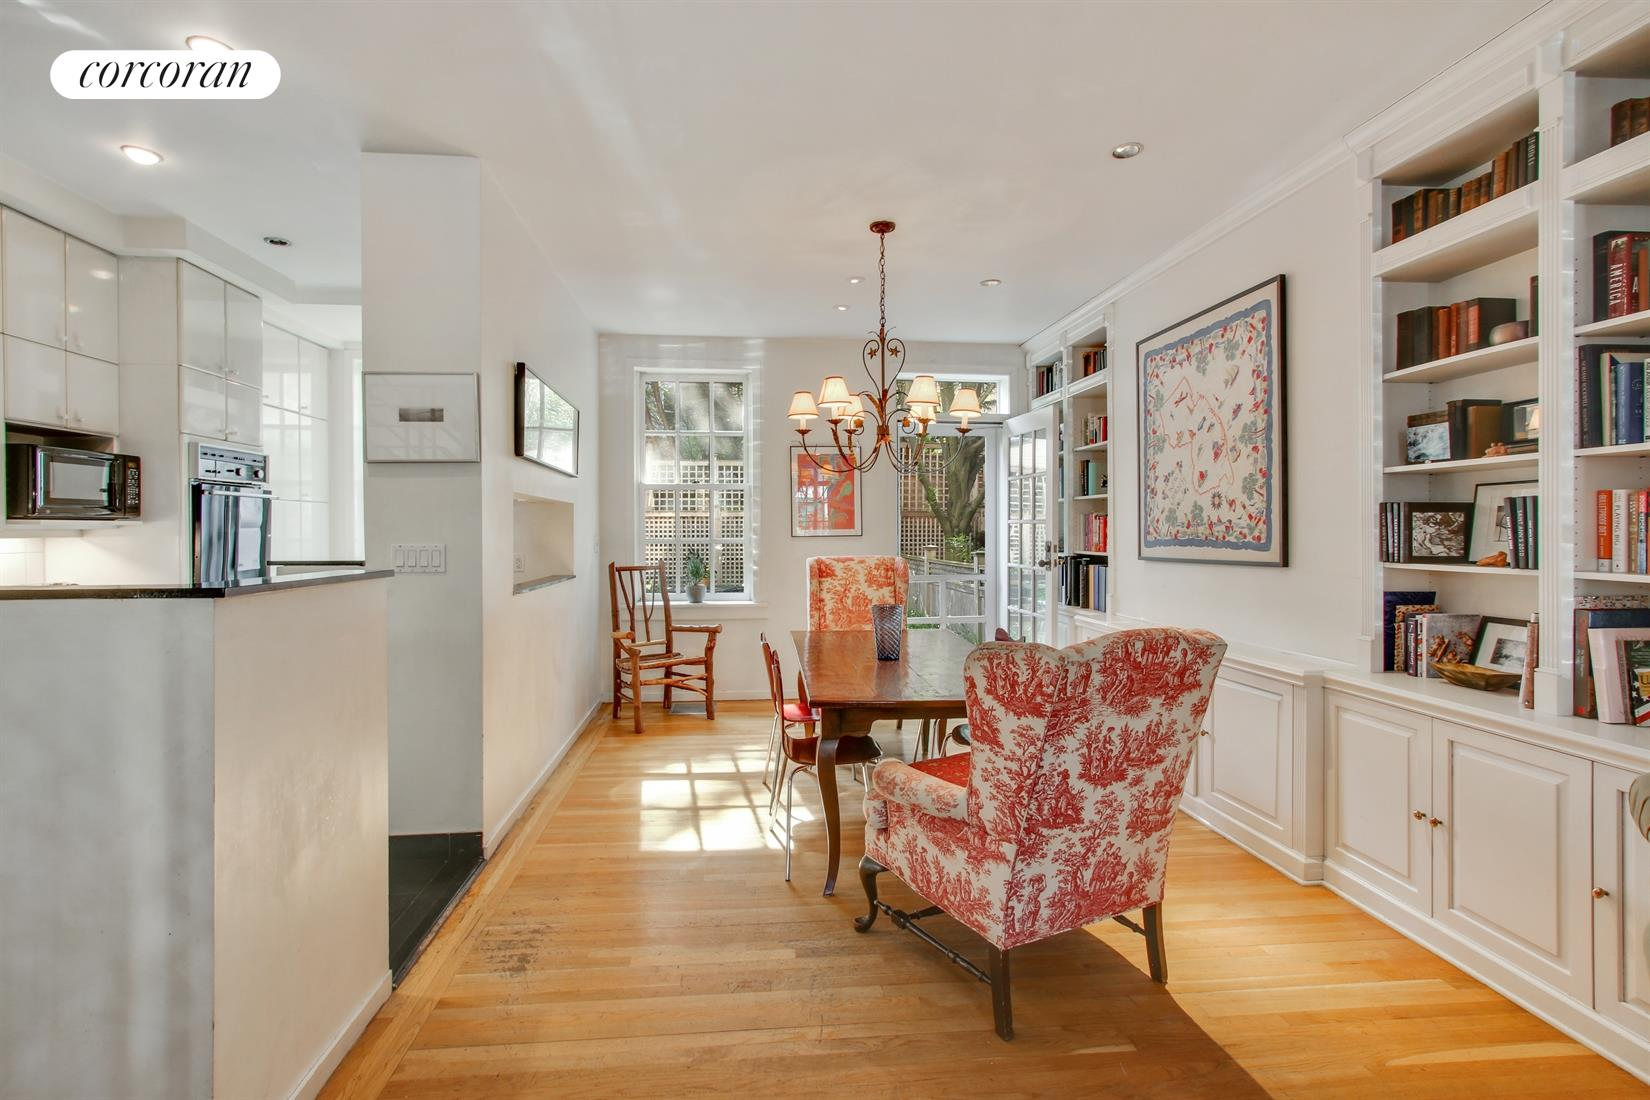 45 Willow Place, Bright, open parlor floor